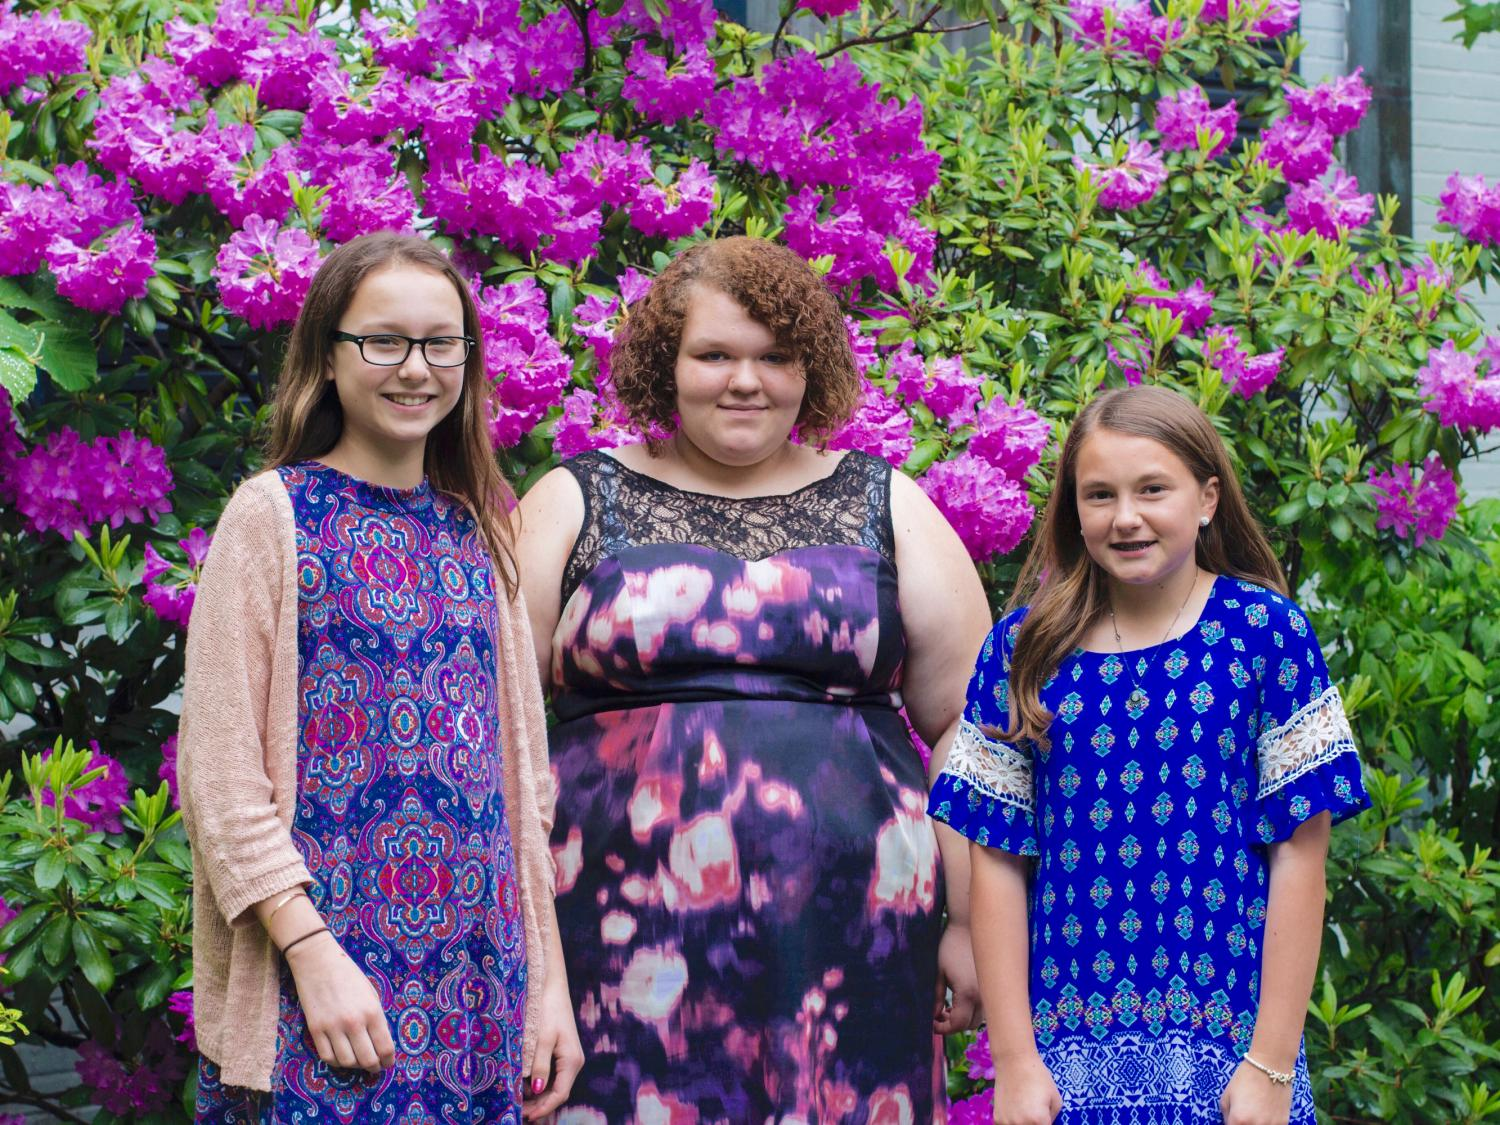 horizontal outdoor photo of three white female students standing in front of large blooming rhododendron shrub